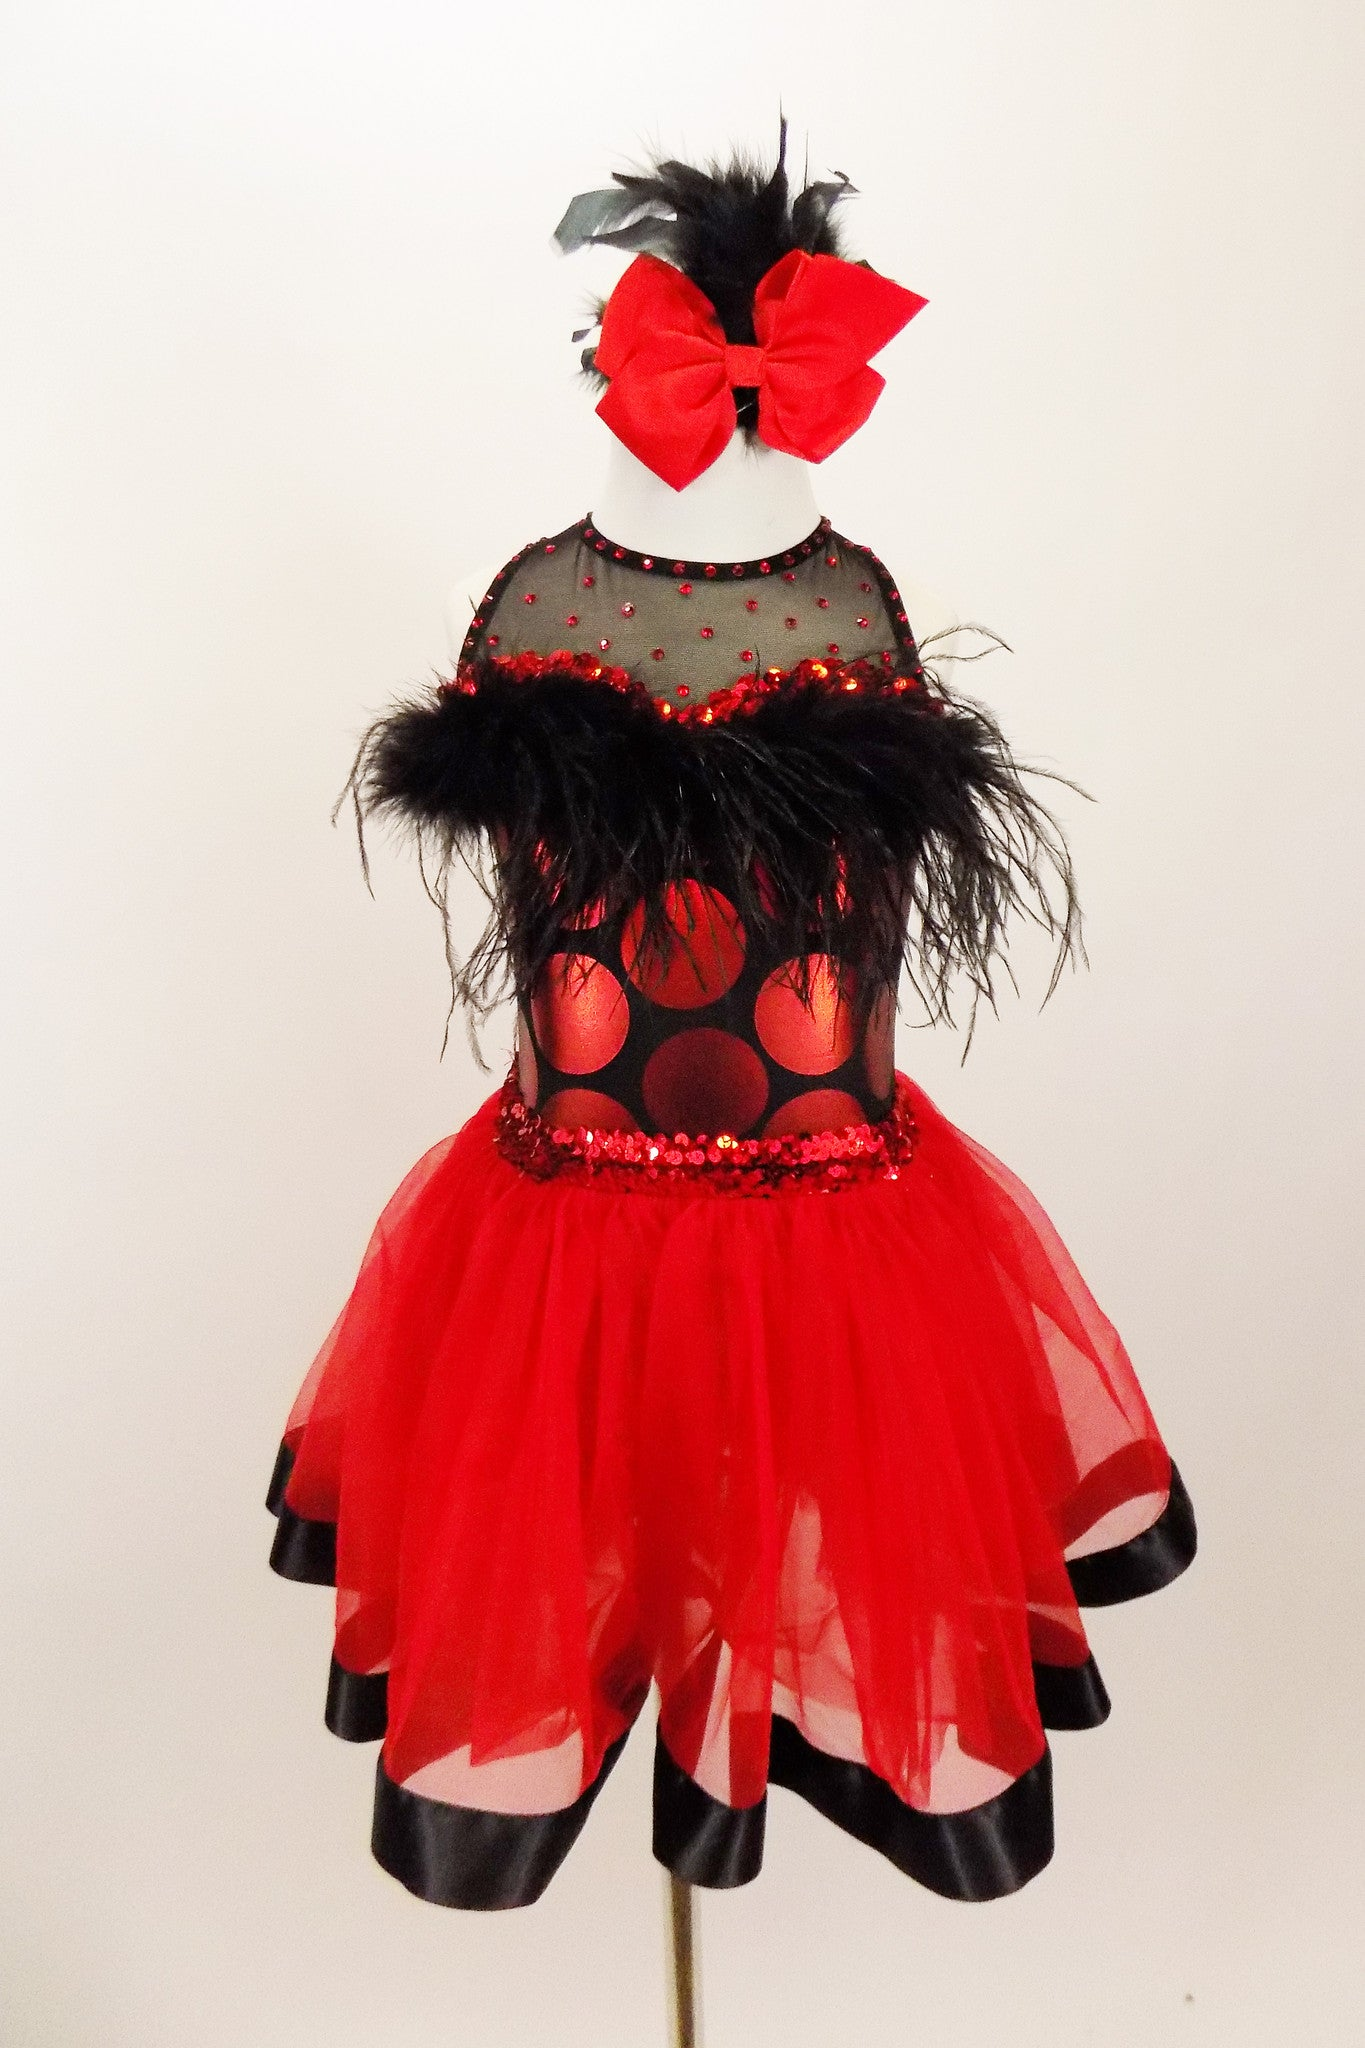 Dress has bodice with sweetheart neck polka dots & black mesh covered with crystals & feather trim. Skirt is red tricot with black satin hem. Has hair accessory. Front